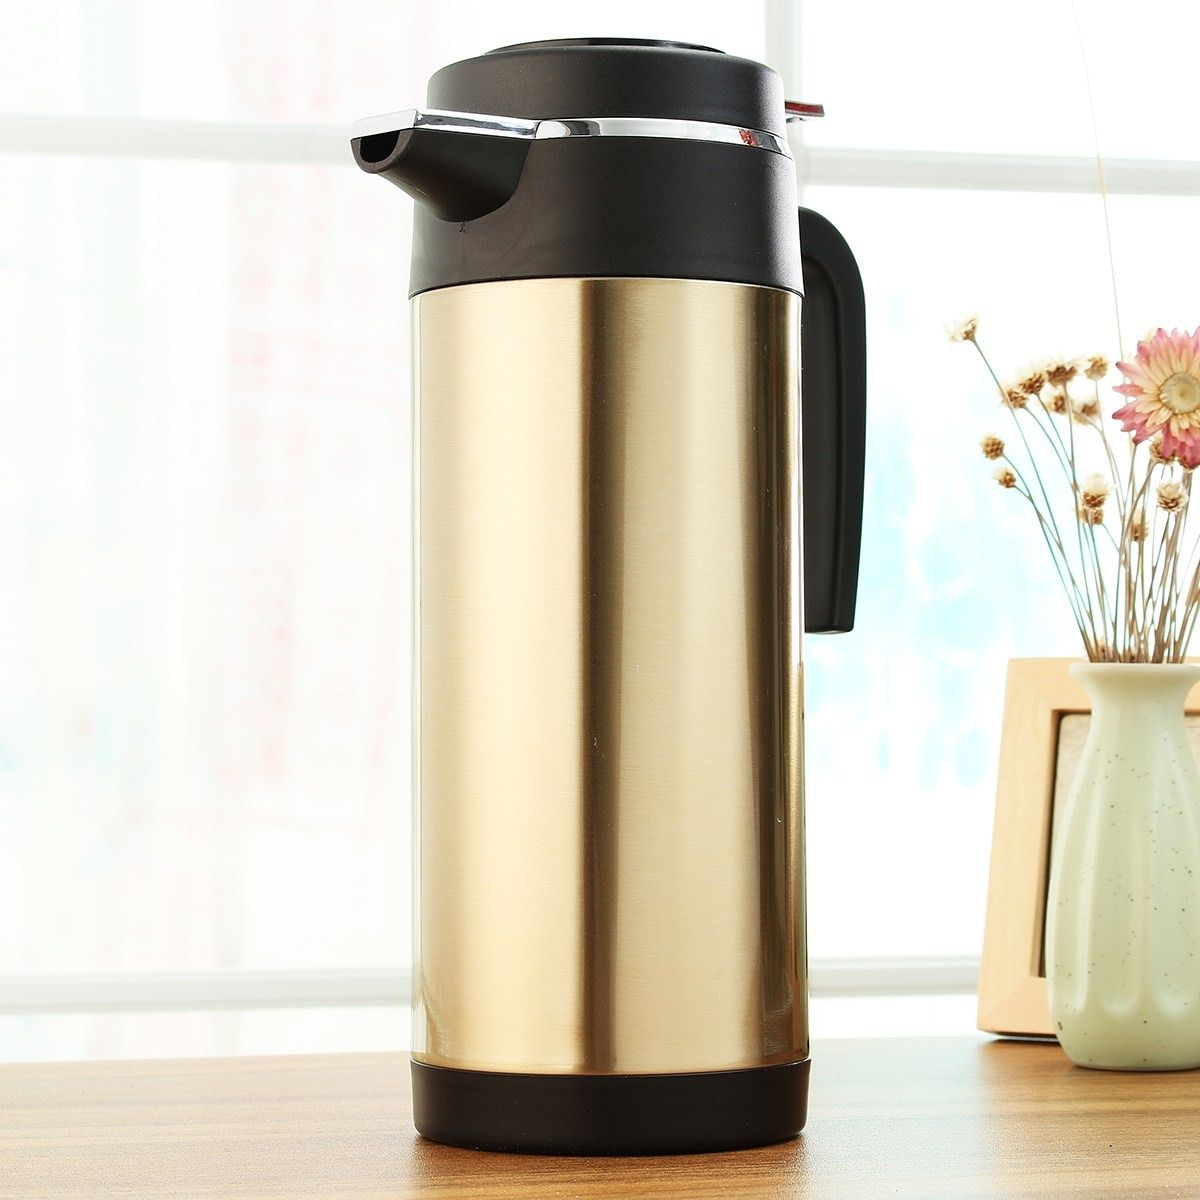 1200ml HOT 12/24V Car Travel Auto Stainless Steel Electric In-Car Kettle Travel Heating Water Bottle